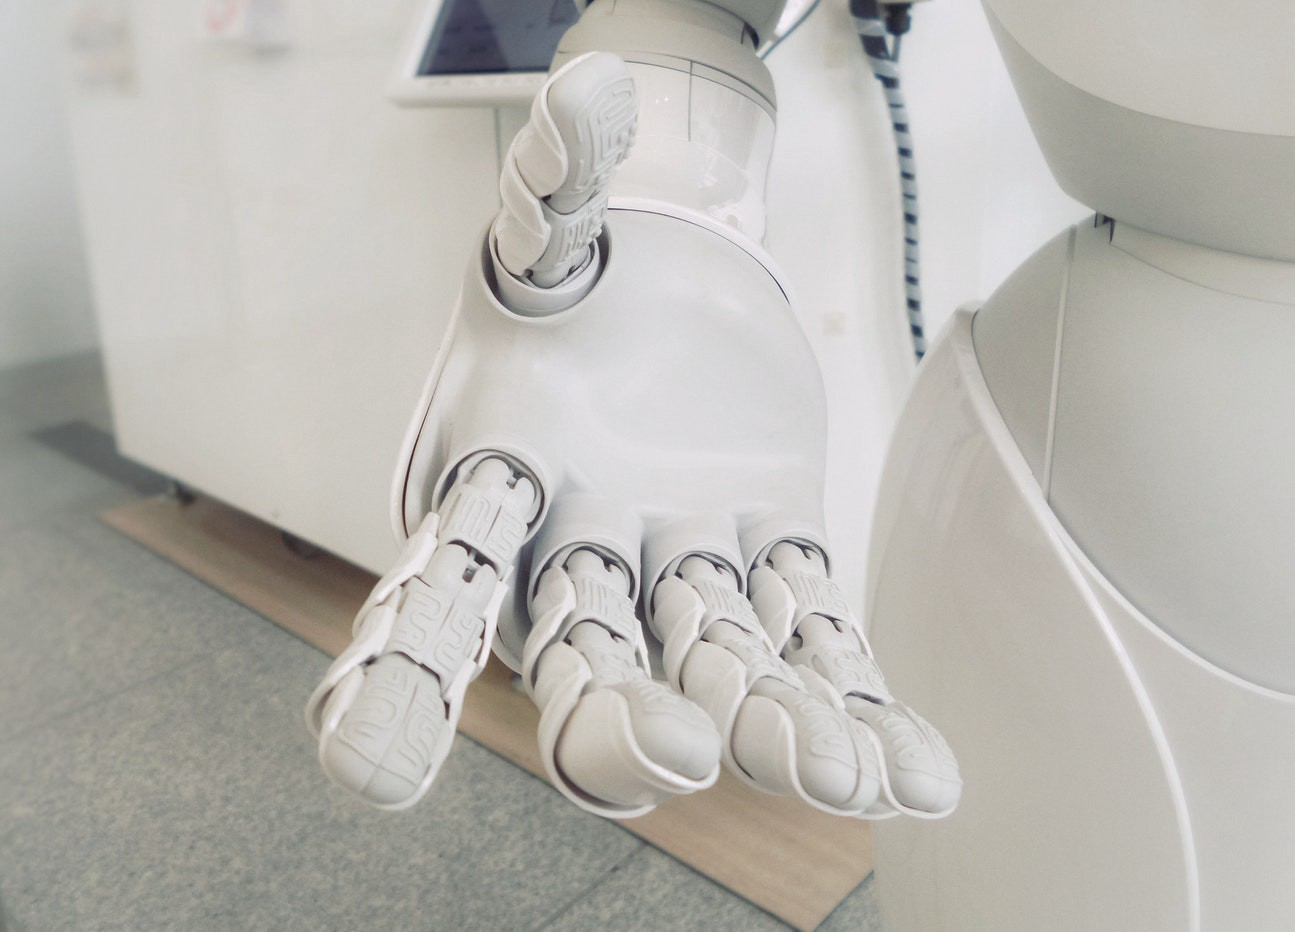 Humans vs Robots: The Difference Between AI and AGI